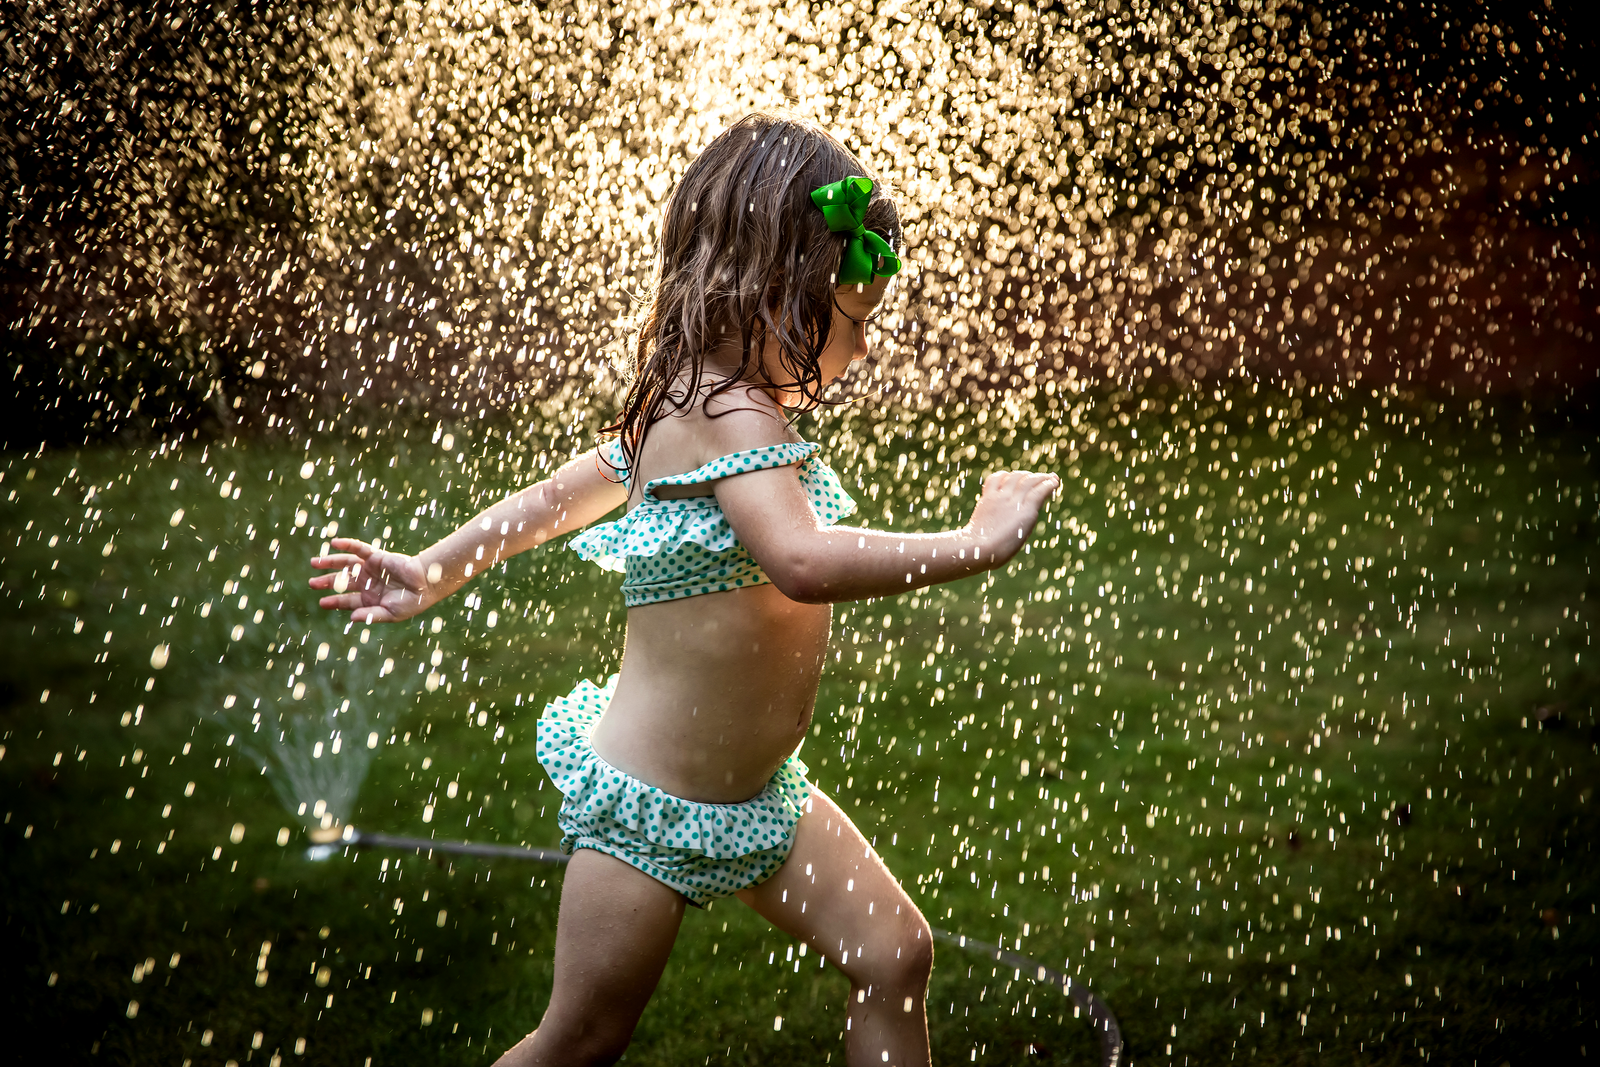 family photographer, columbus, ga, atlanta, documentary, photojournalism, sprinkler, sun, water drops, little girl running, ker-fox photography_8502